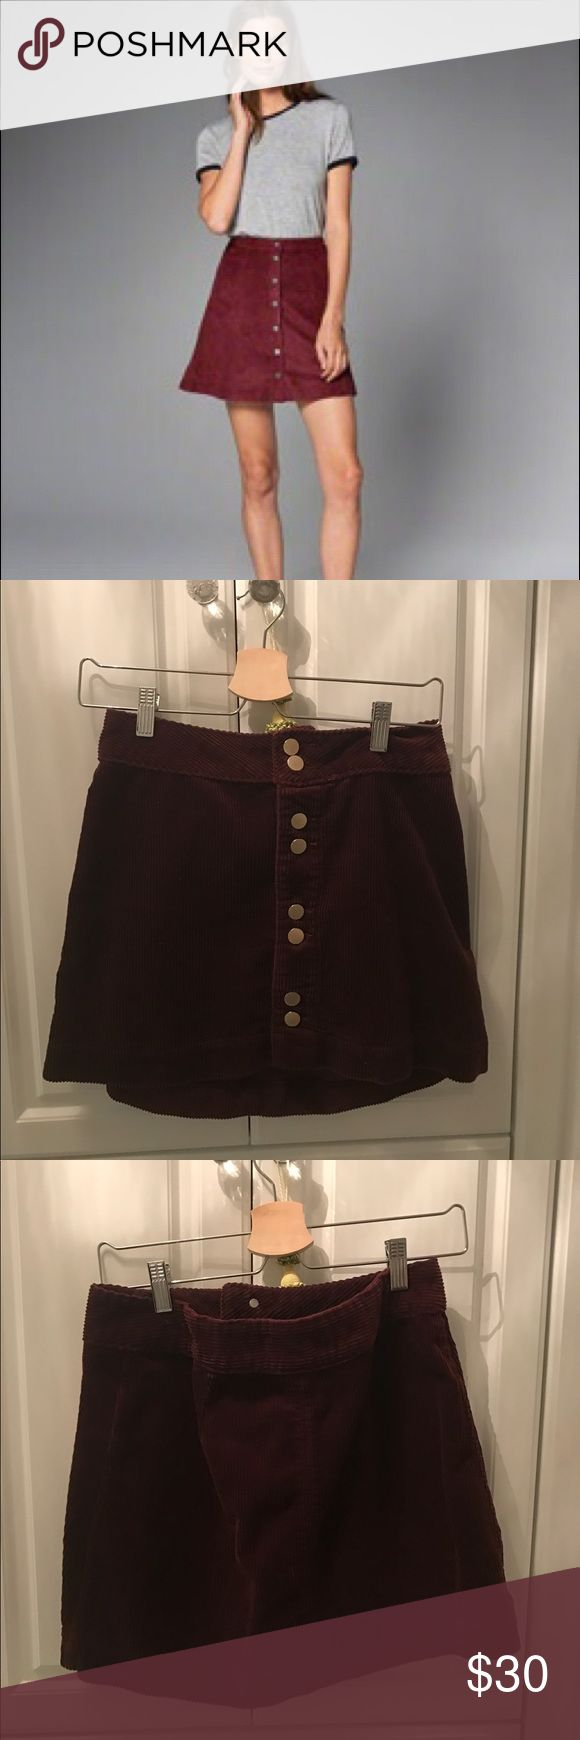 Abercrombie and Fitch SKIRT This burgundy/red skirt from Abercrombie and Fitch Fitch as a size medium. It is super comfortable and easy to walk around in. It is in great condition and has never been worn. Abercrombie & Fitch Skirts